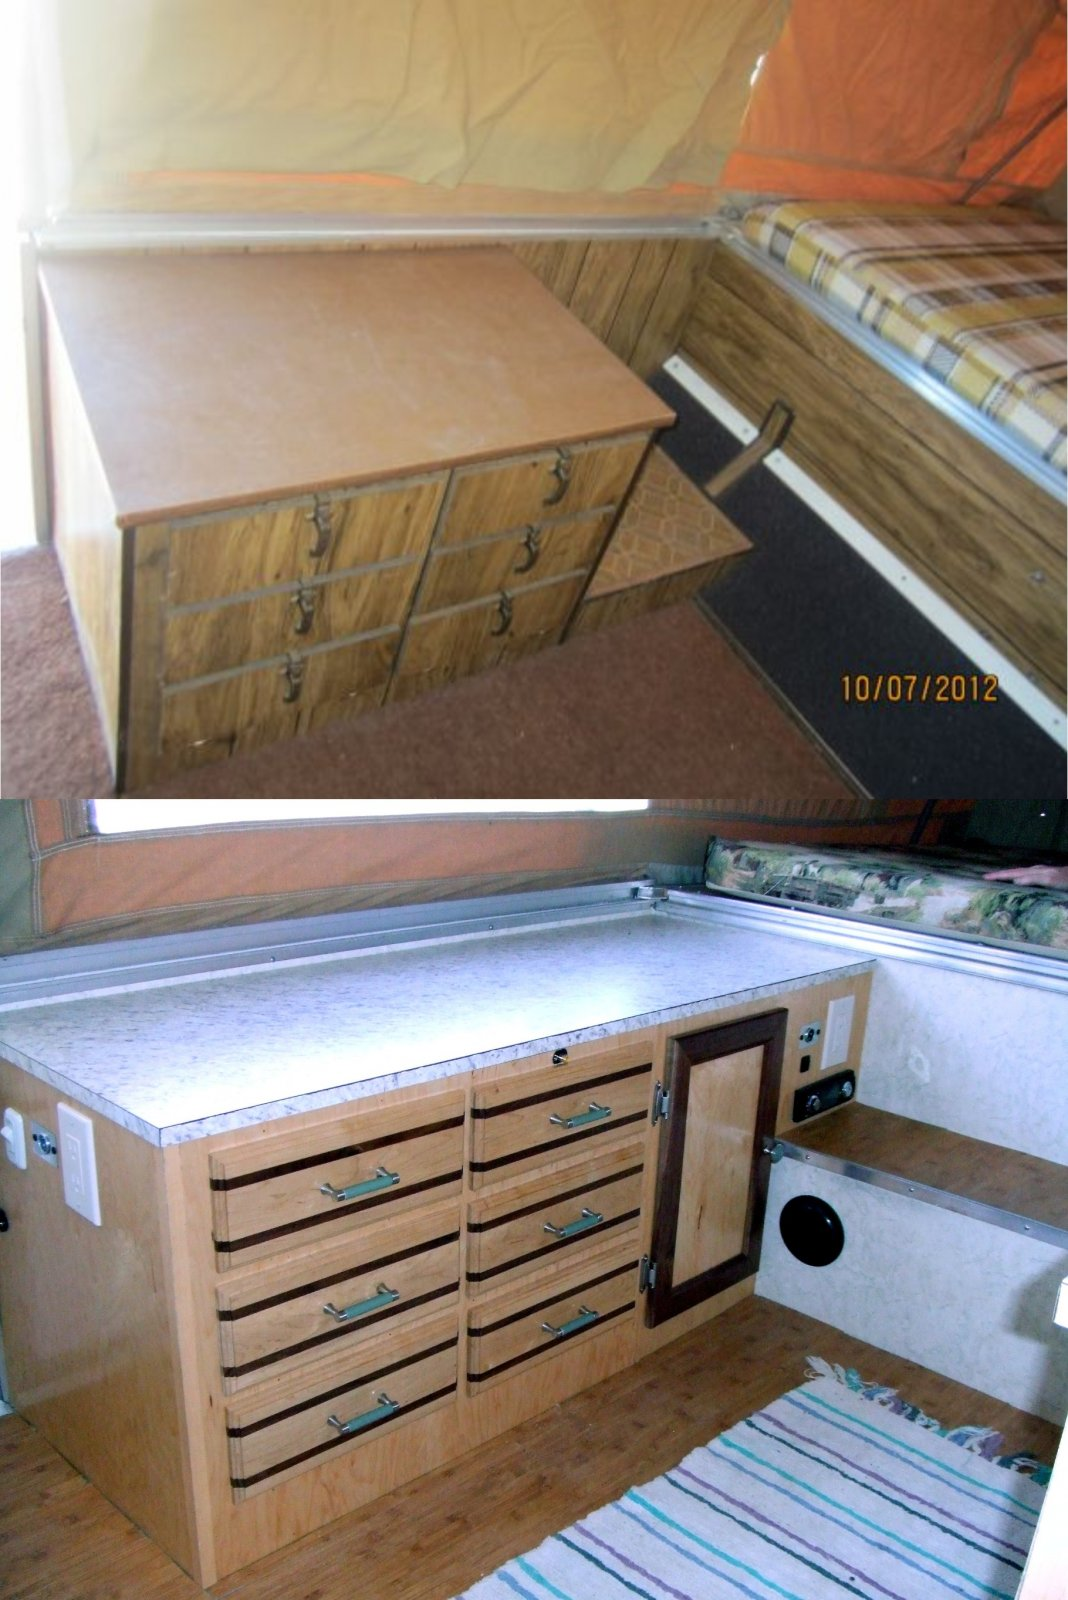 Click image for larger version  Name:Chest of Drawers Before and After.jpg Views:67 Size:242.0 KB ID:40962